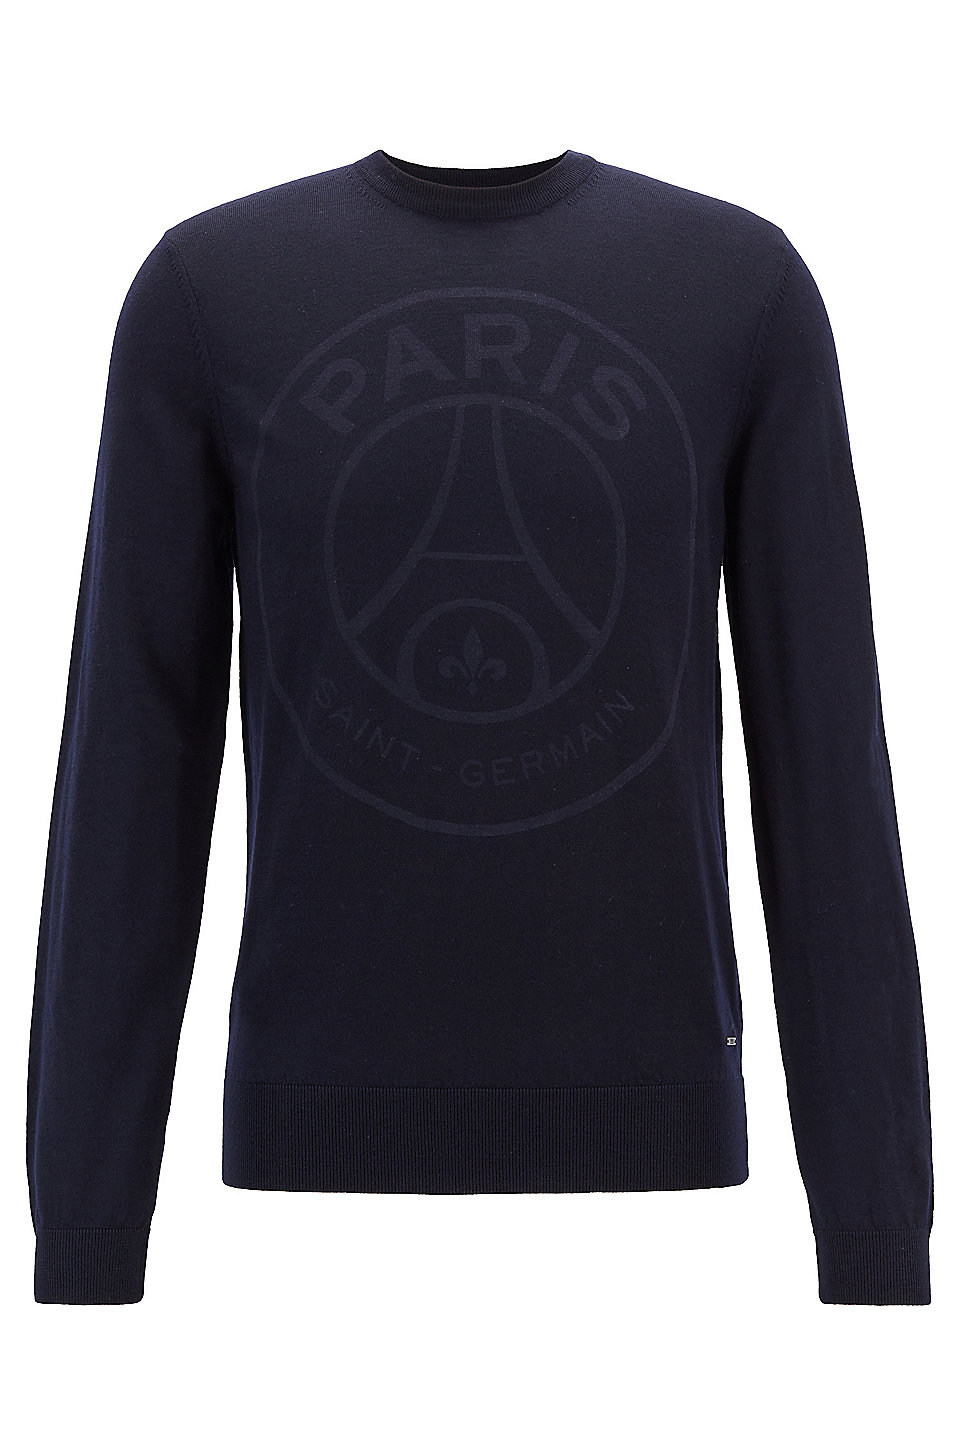 05b84c6d6 BOSS - Limited-edition wool sweater with Paris Saint-Germain logo